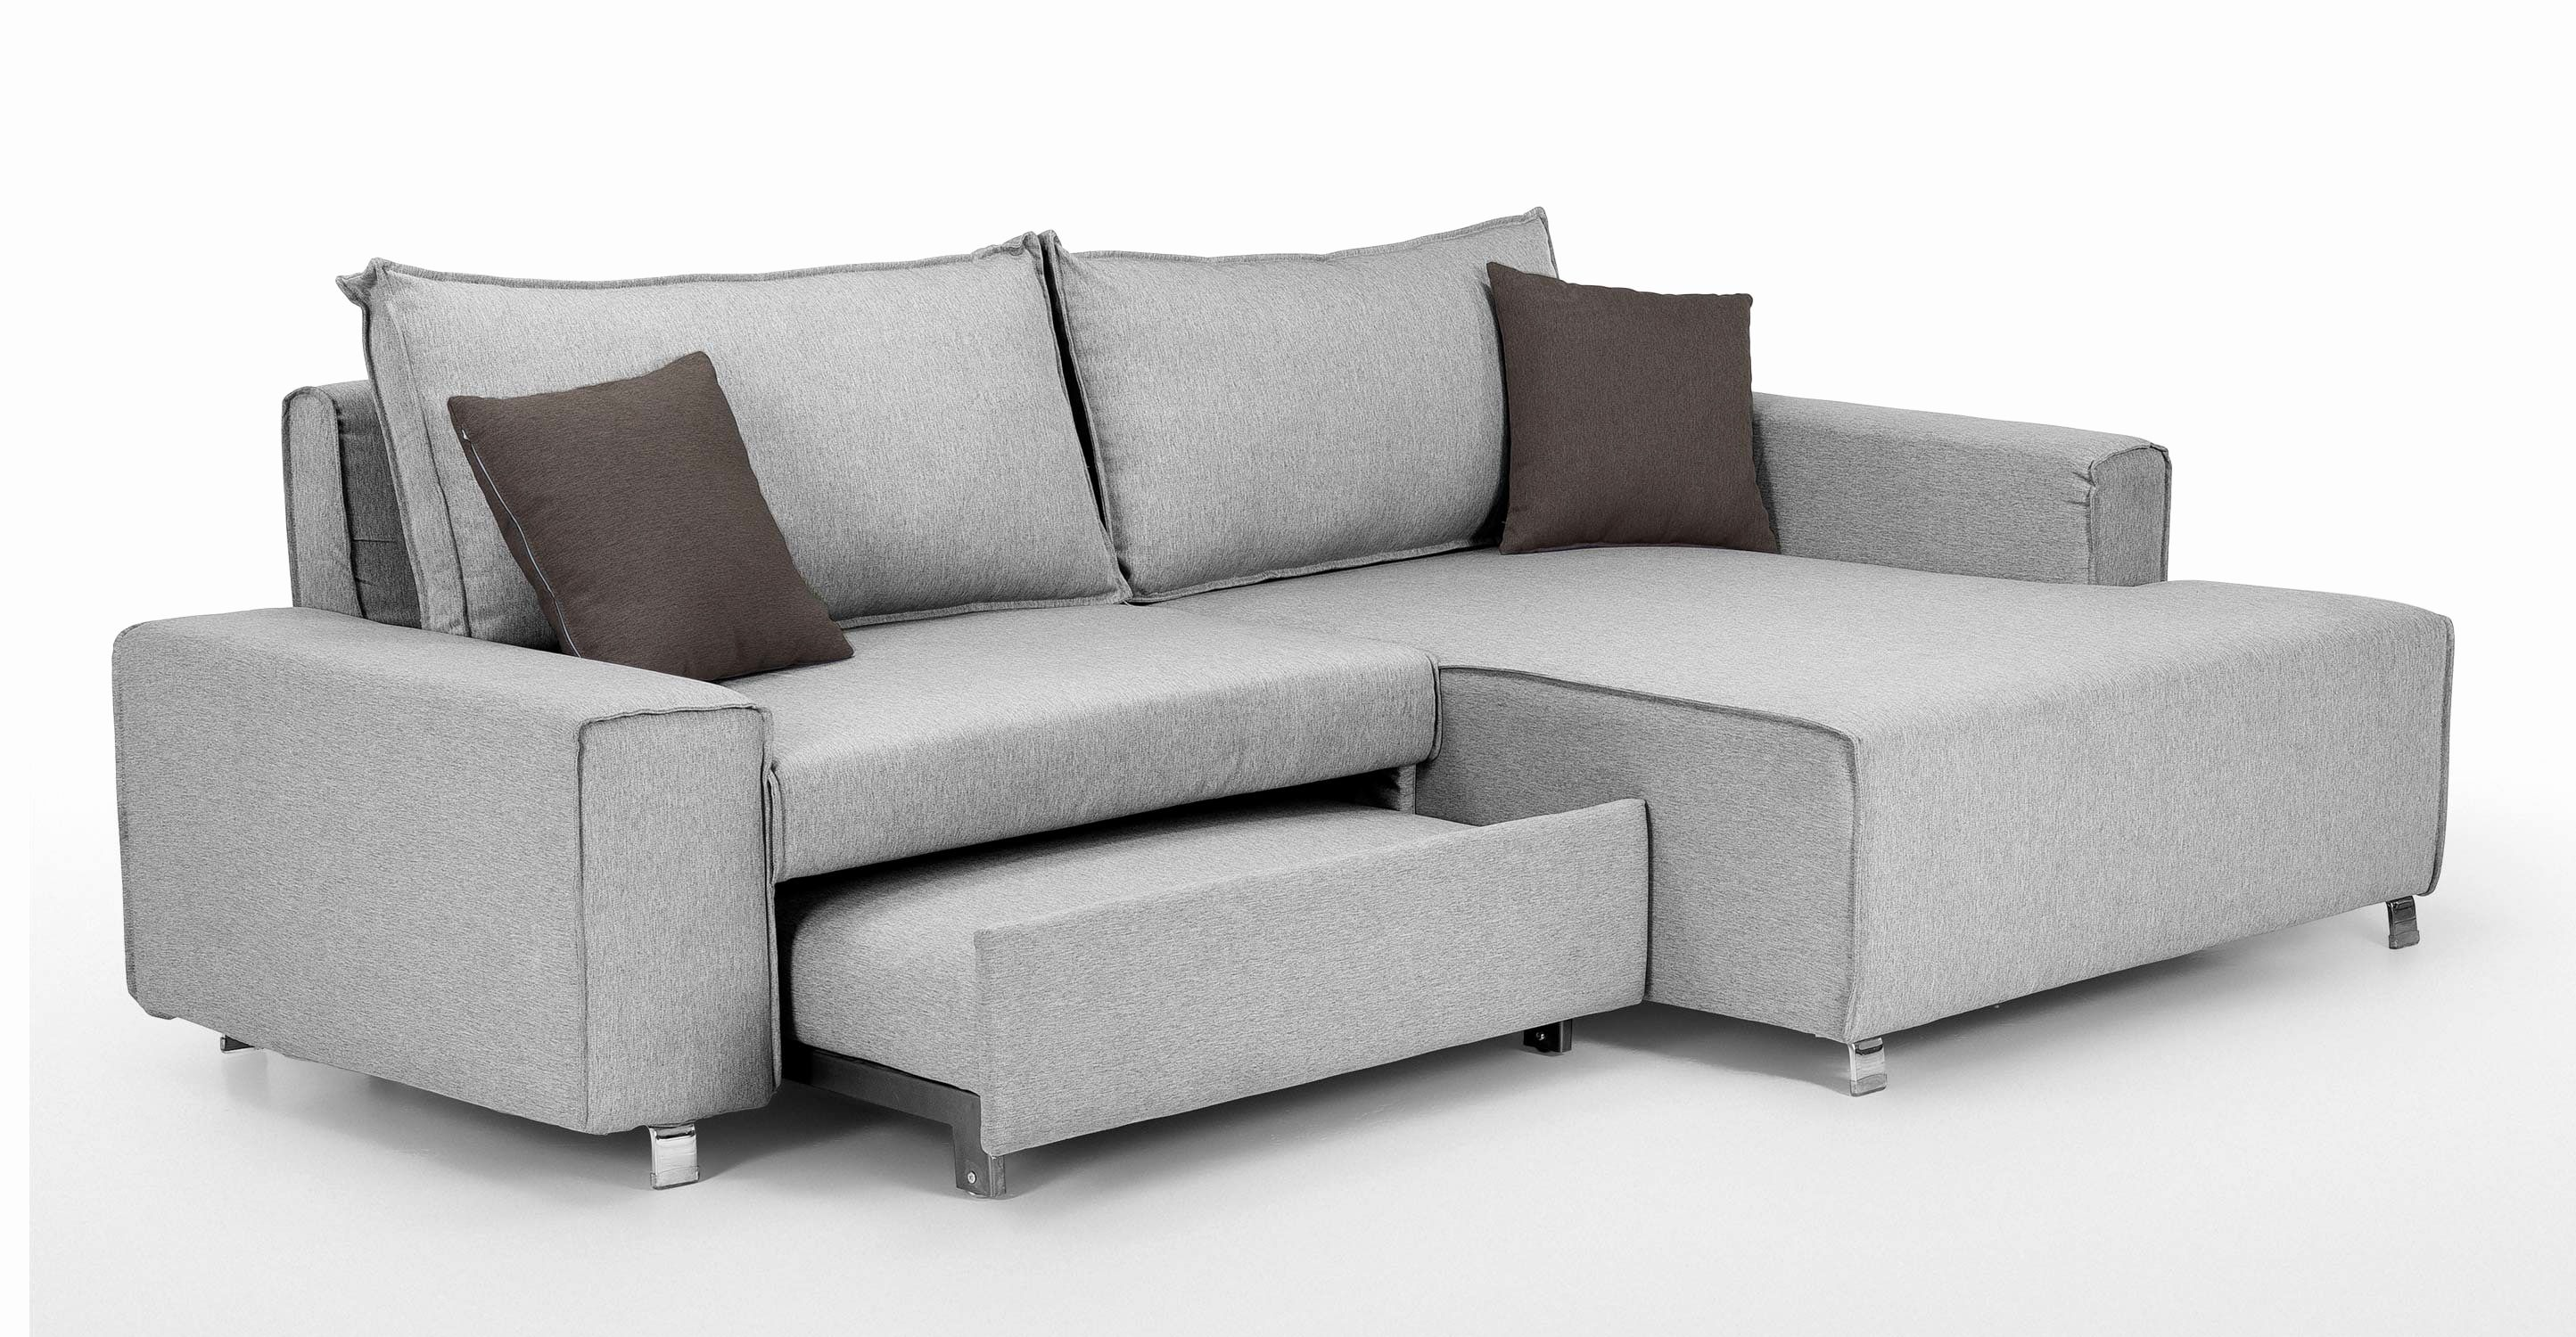 Pin By Great Sofas On Corner Sofa Corner Sofa Bed Modern Sofa Bed Sofa Bed